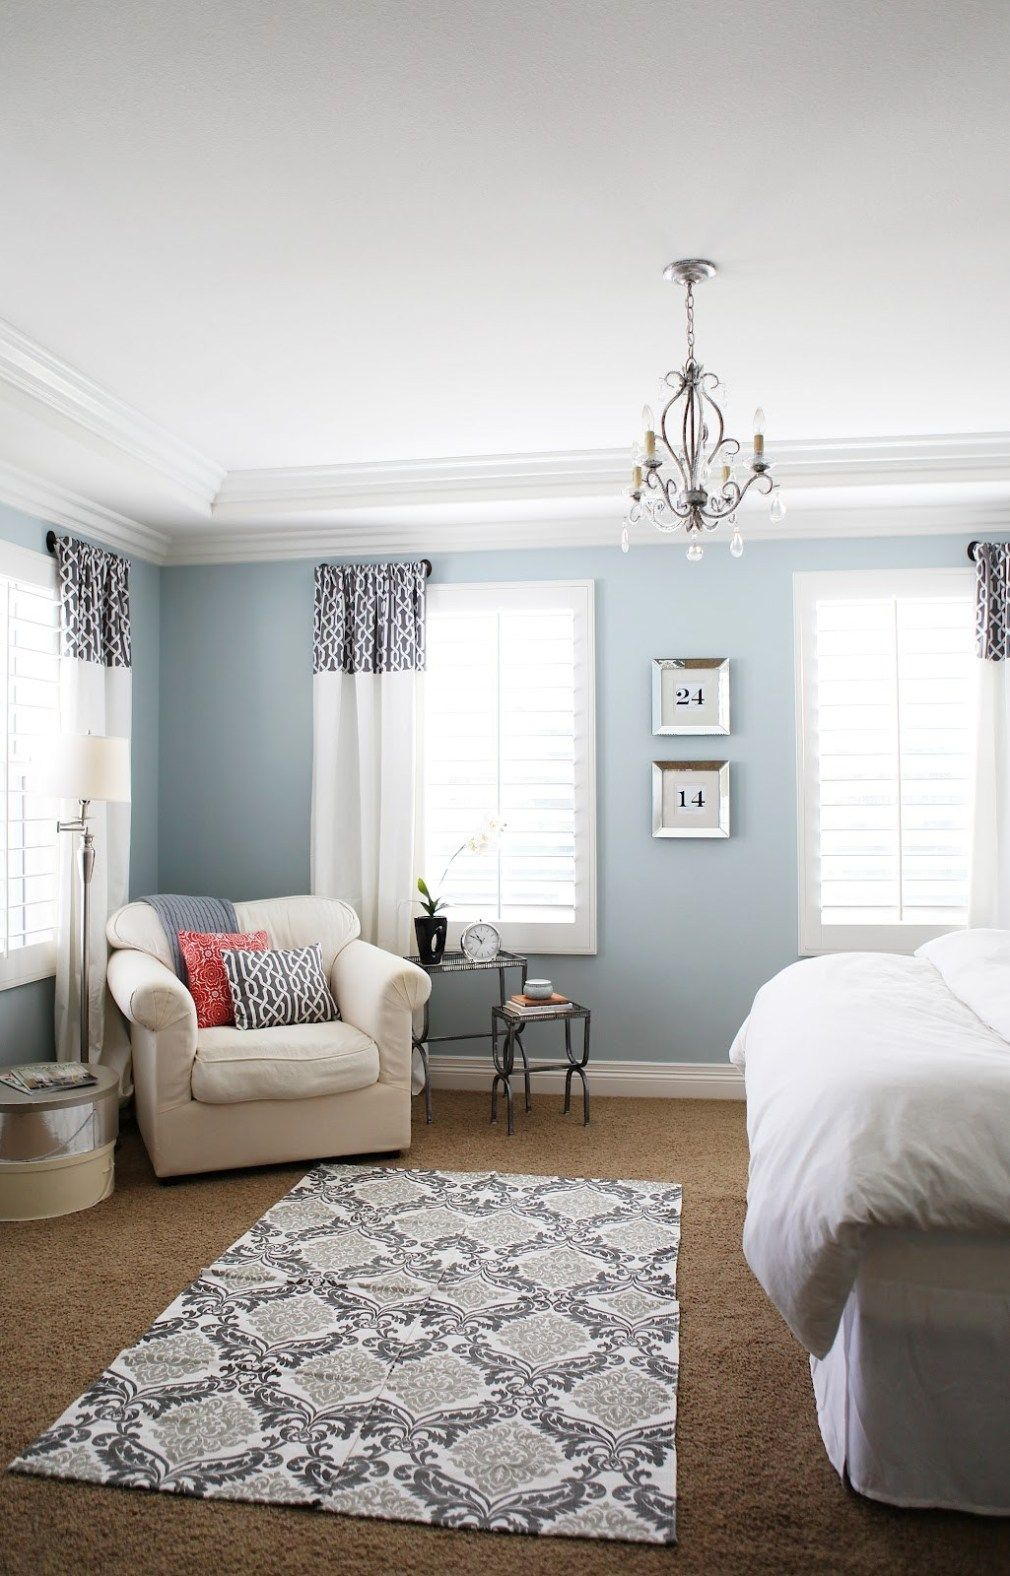 Benjamin Moore tissue pink - Henry & Co | Room colors, Co